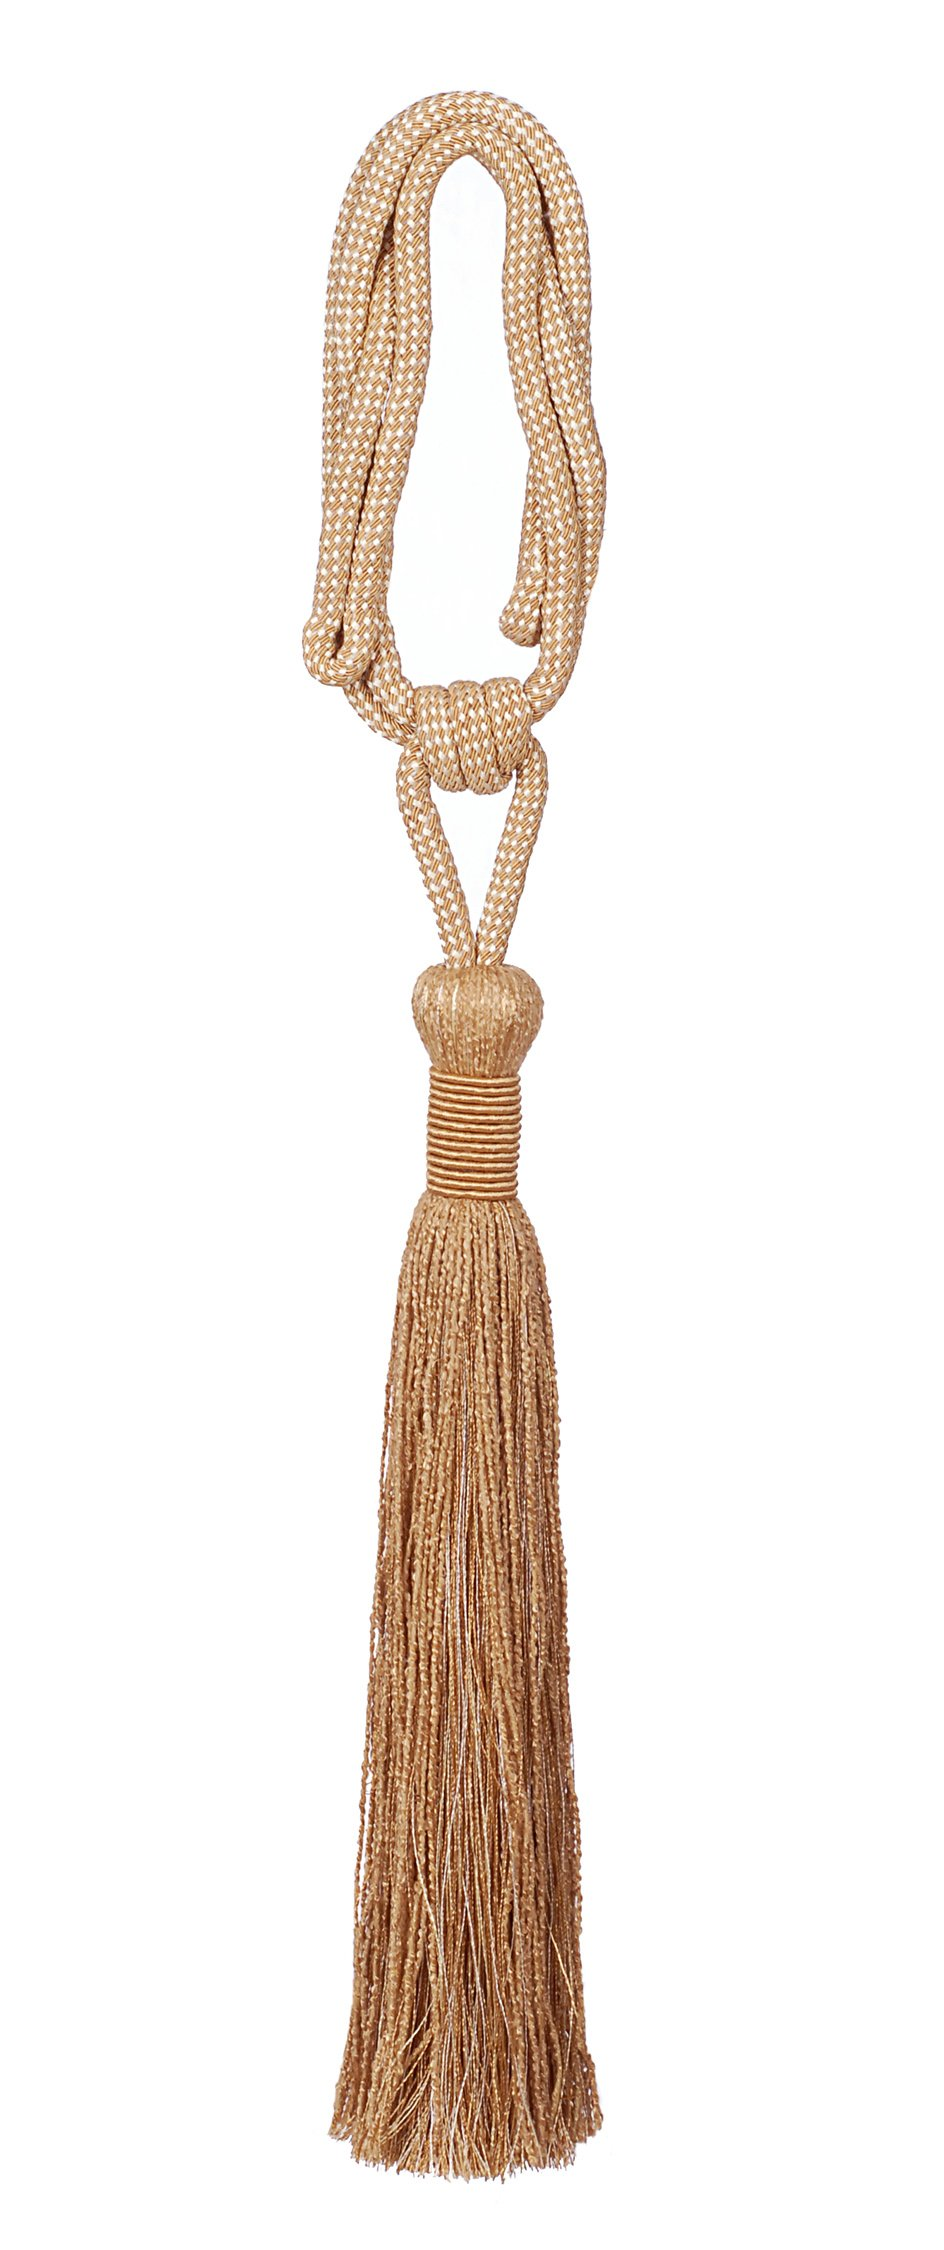 India House 79966 Vedi Tieback with 15-Inch Single Tassel and 30-Inch Cord, Gold